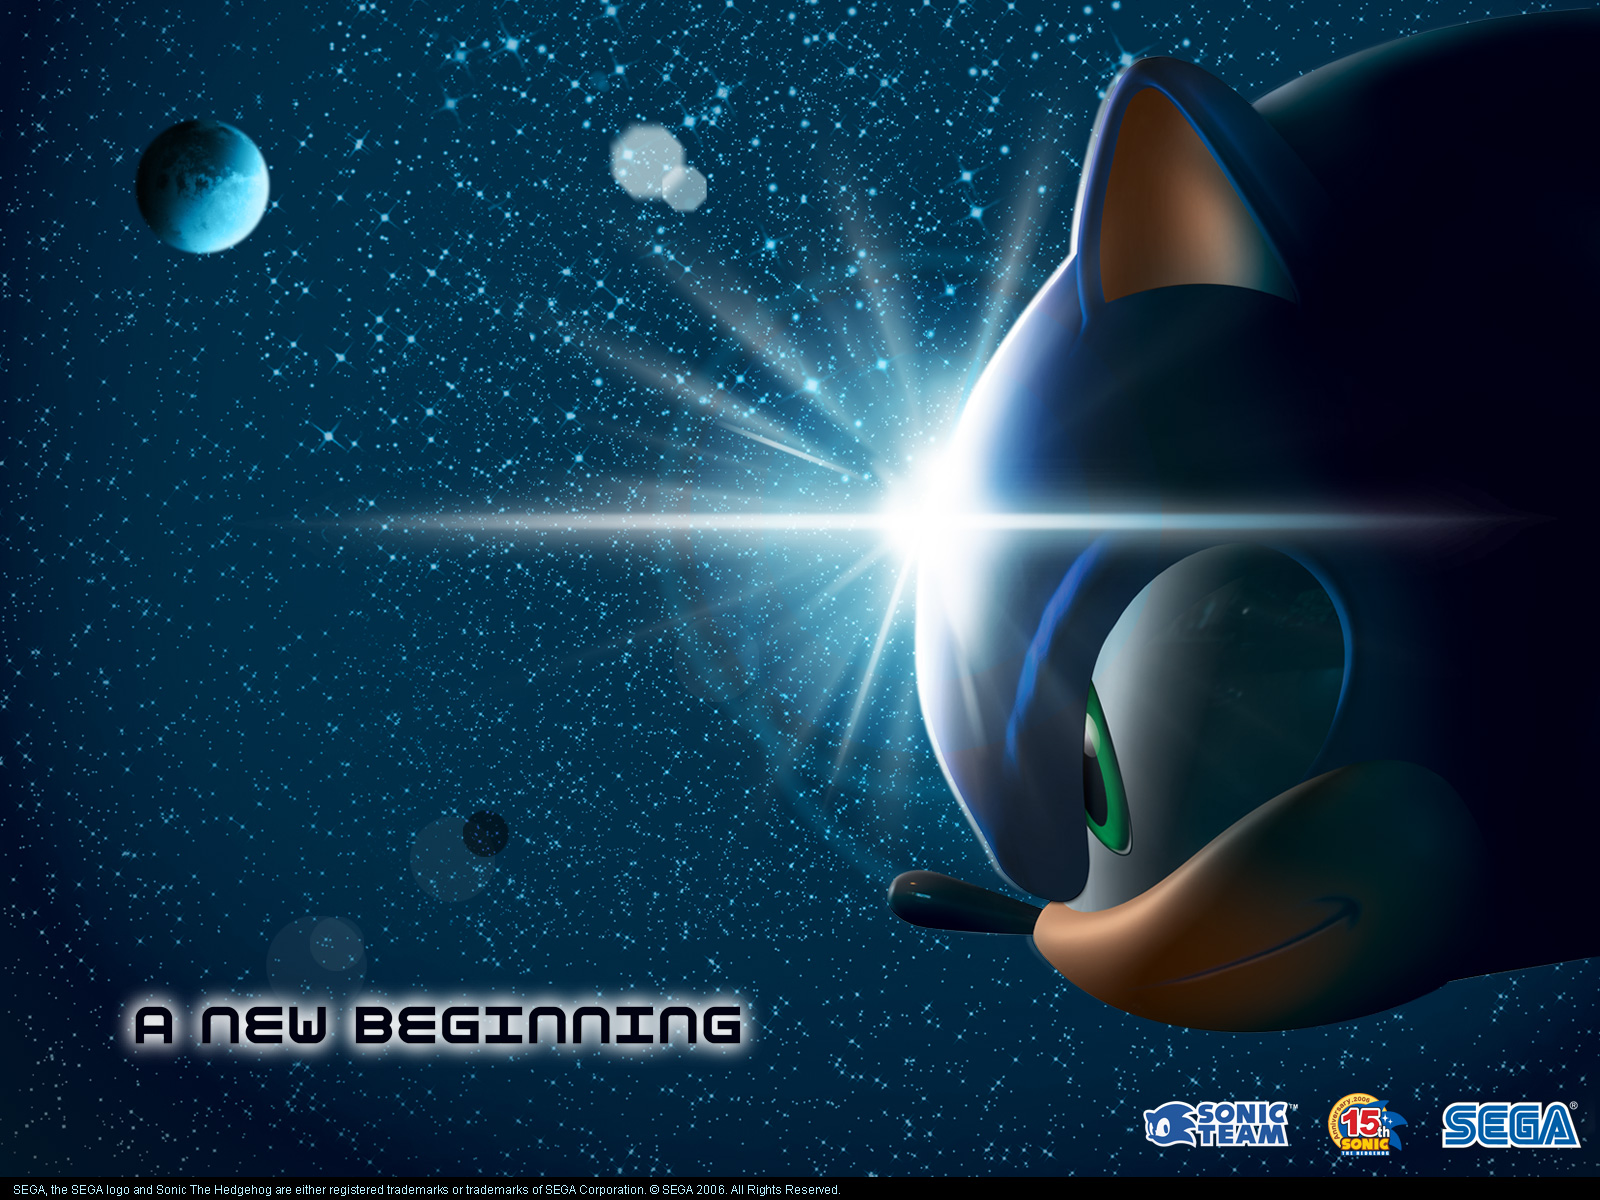 http://1.bp.blogspot.com/-3RgS5oeI9Iw/UAkpWE5S0FI/AAAAAAAABto/3dRbMEsUduM/s1600/sonic+the+hedgehog+a+new+beginning+wallpaper+background+sega+game.jpg